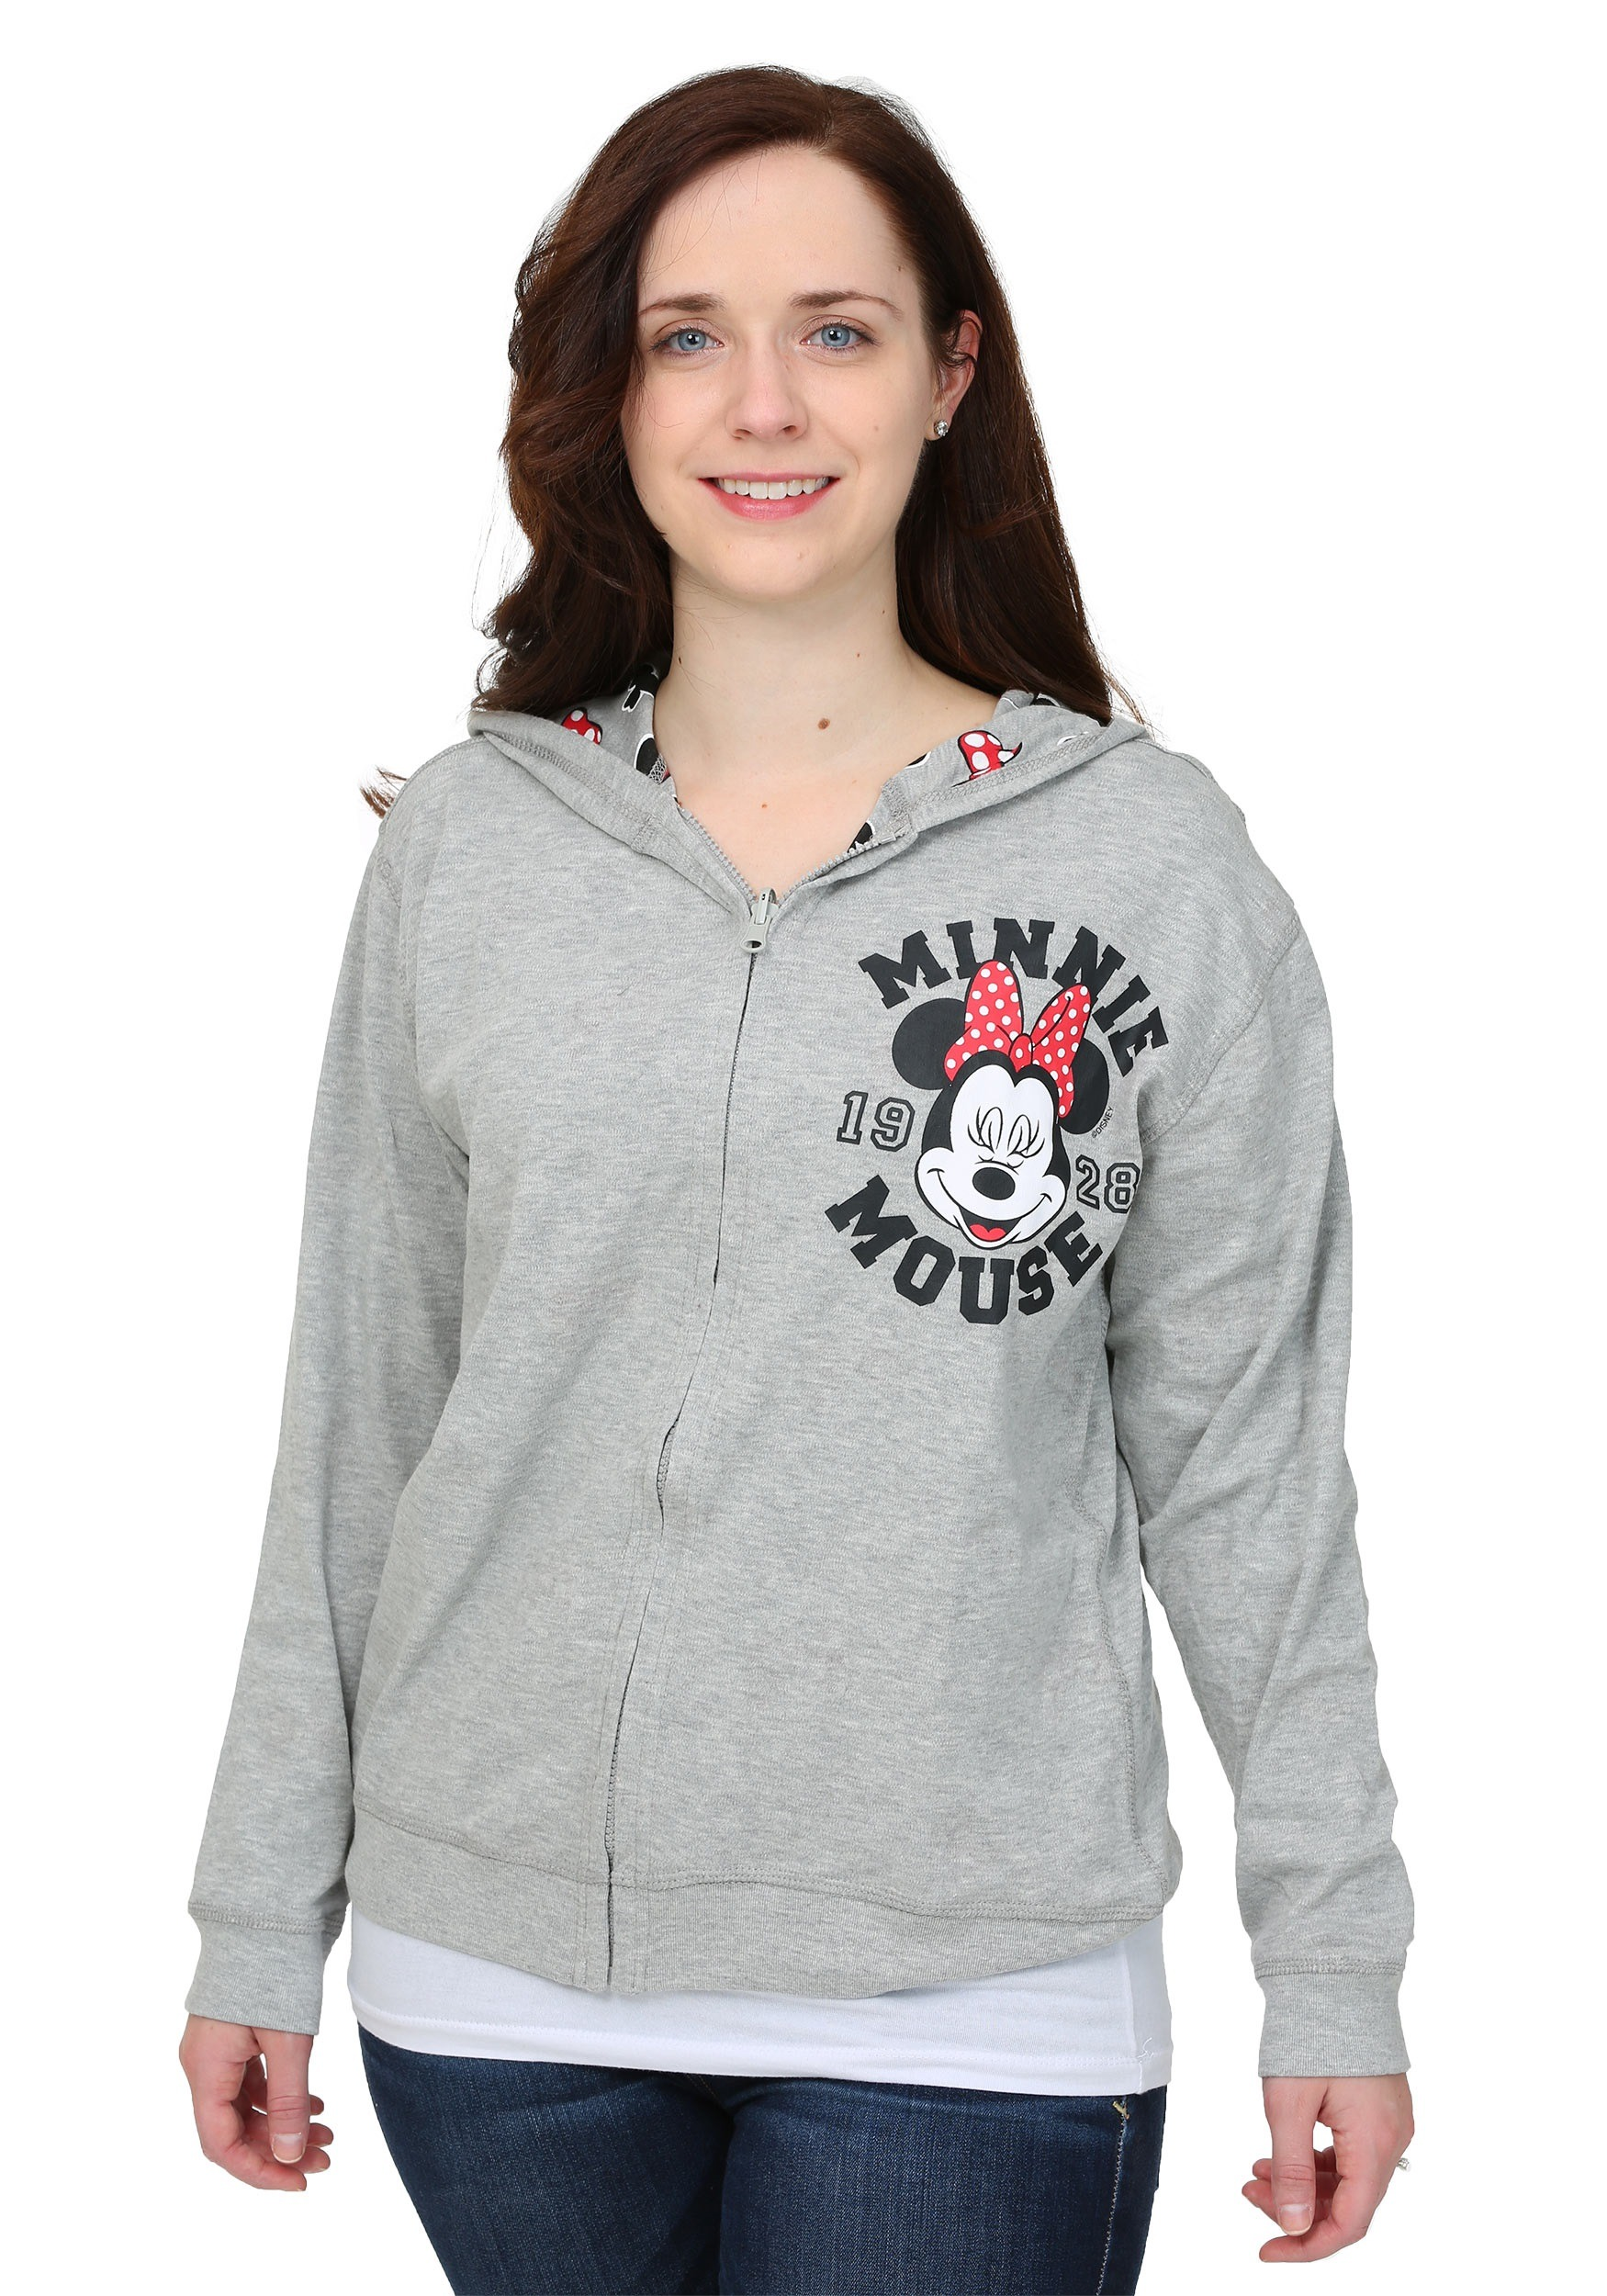 Minnie Mouse Reversible Womens Hooded Sweatshirt